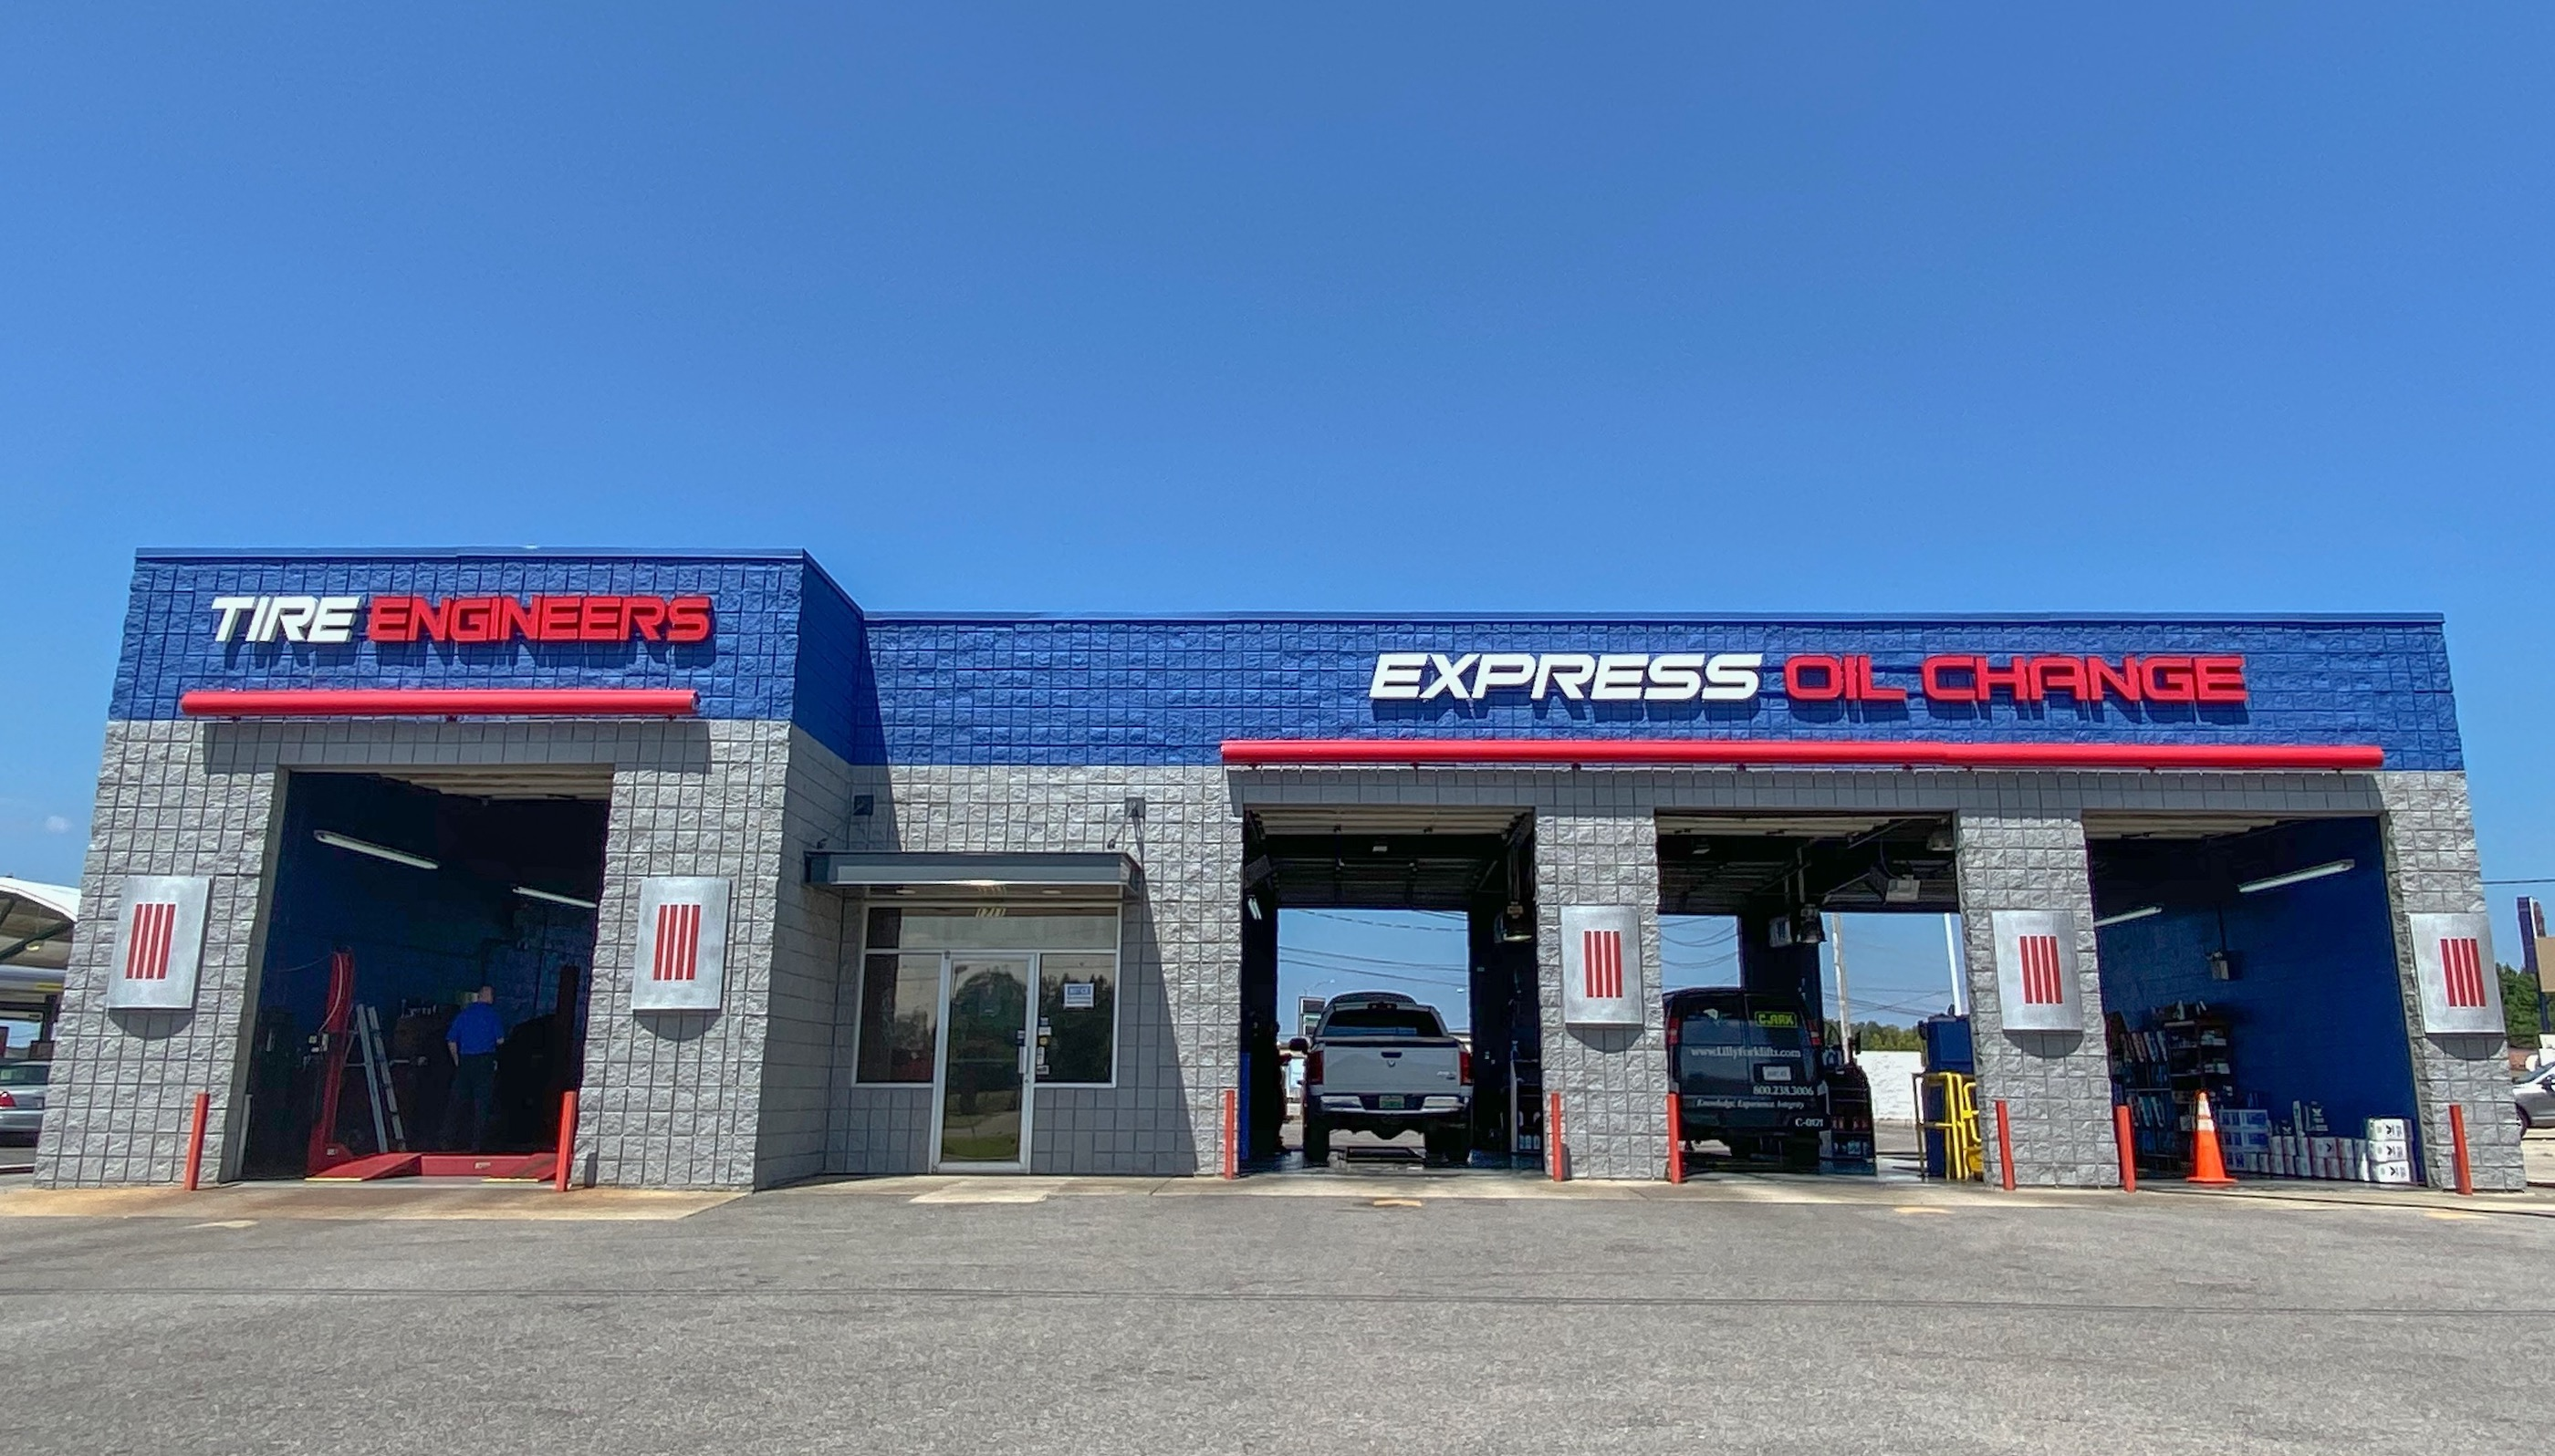 Express Oil Change & Tire Engineers Cullman, AL - South store